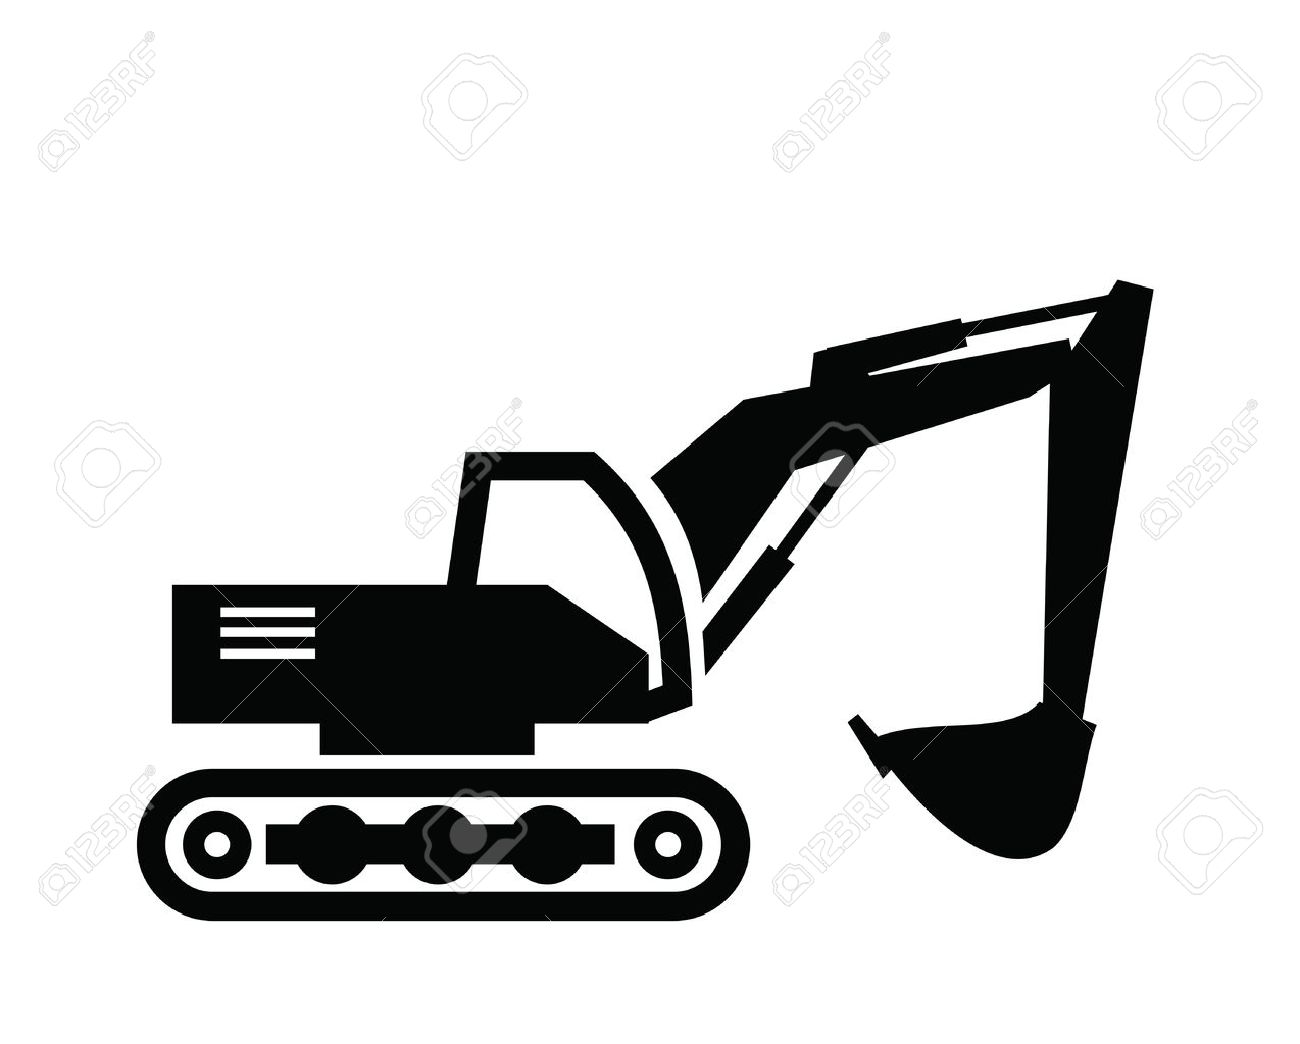 Excavator clipart black and white 4 » Clipart Station.